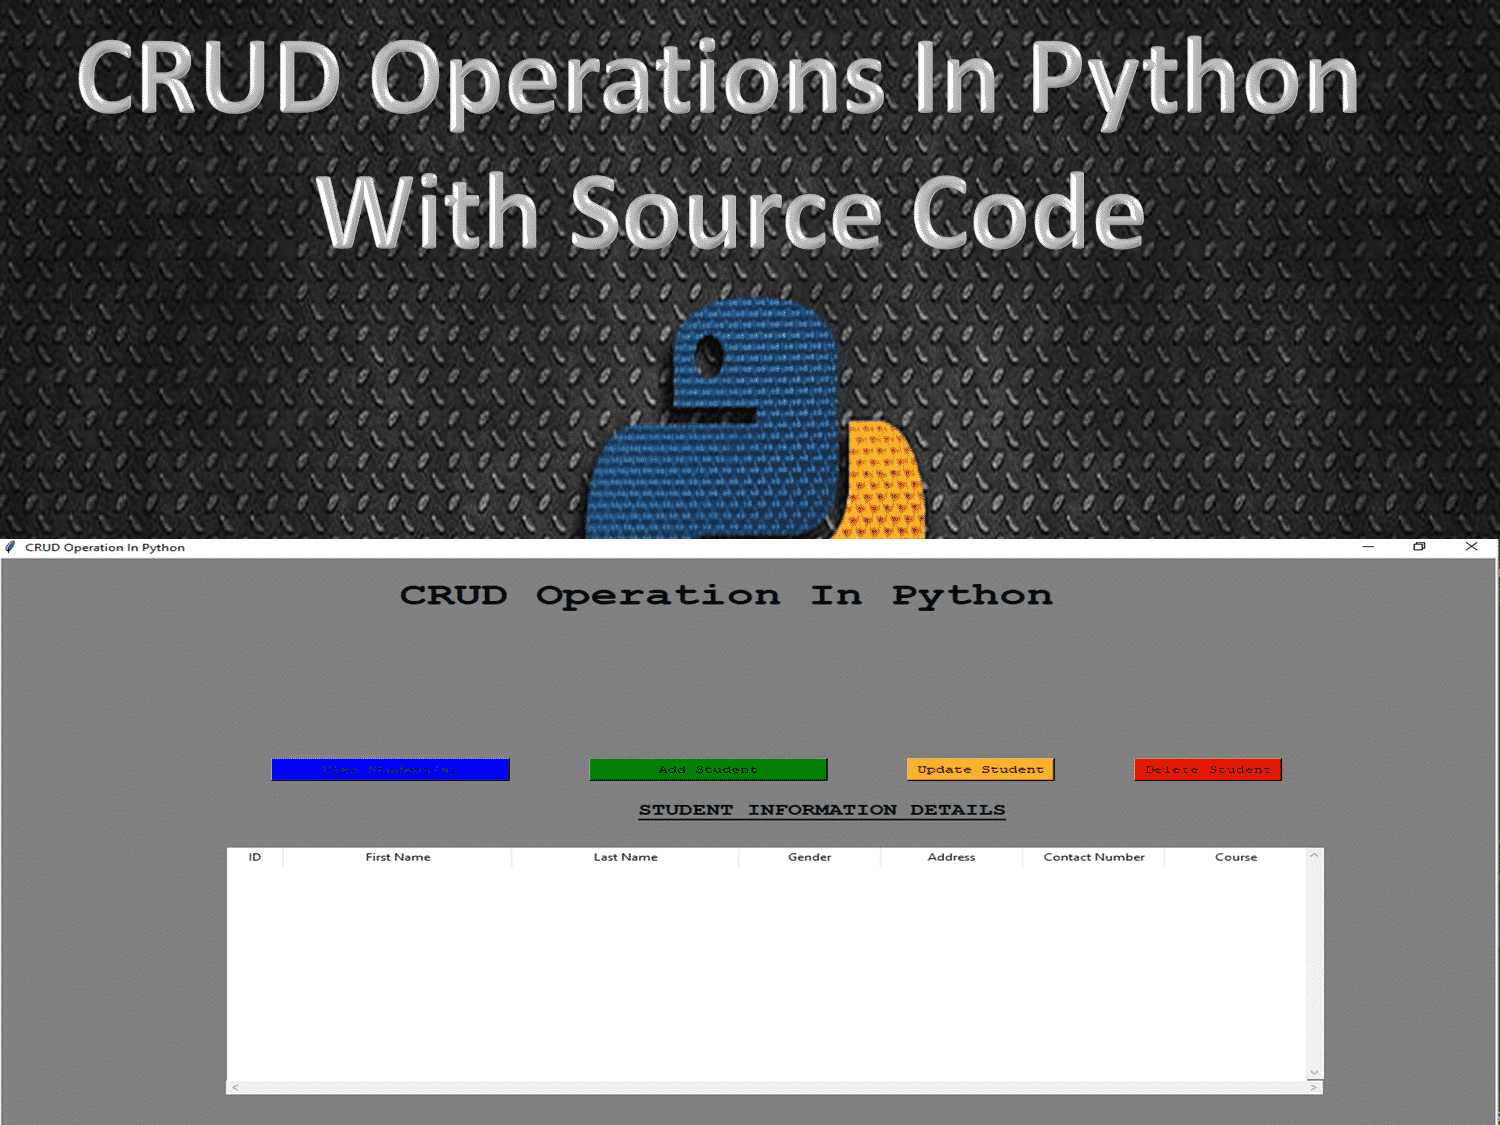 CRUD_Operations_In_Python_With_Source_Code_2020